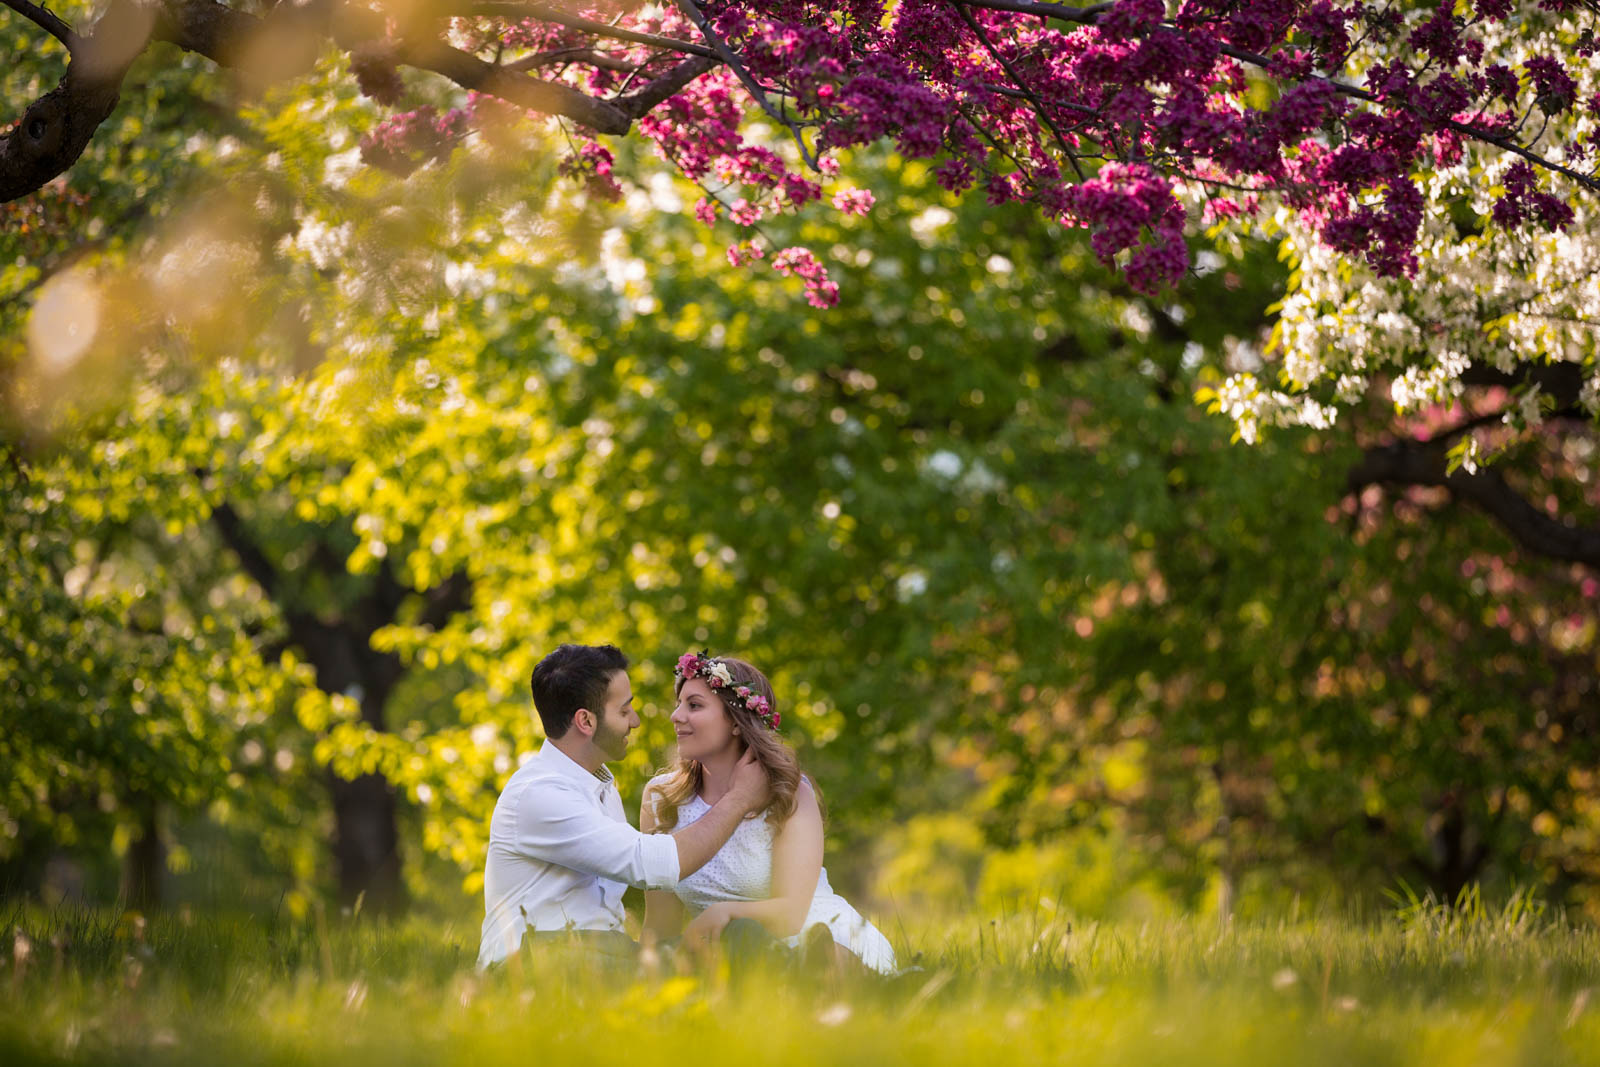 botanical garden wedding montreal pixelicious photography